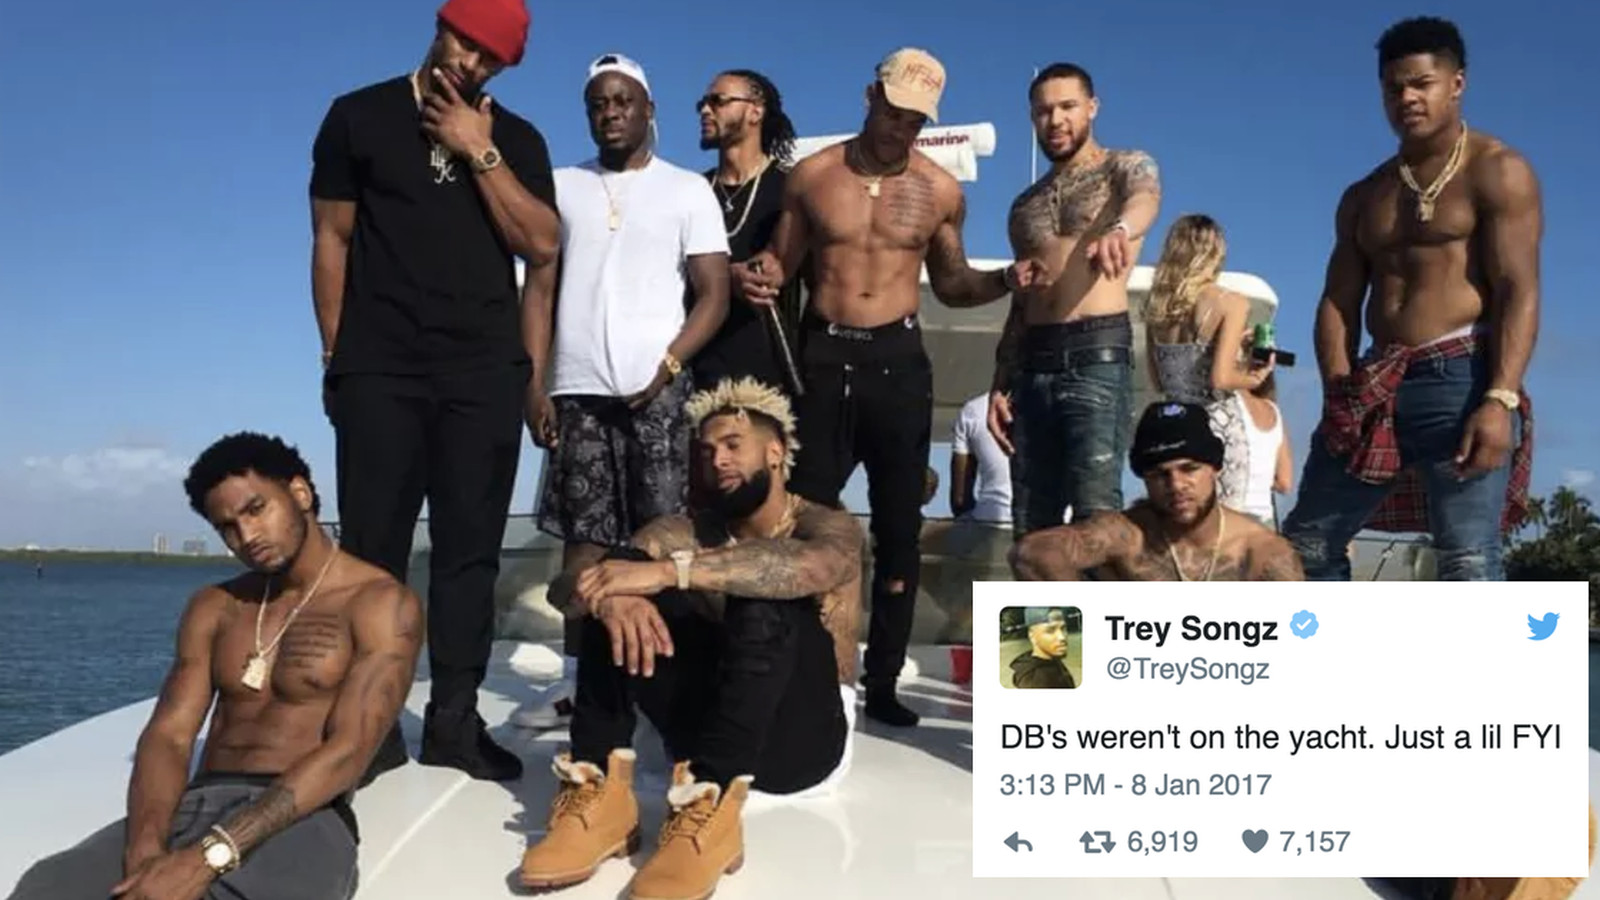 Trey Songz defends the Giants' boat trip while throwing ...